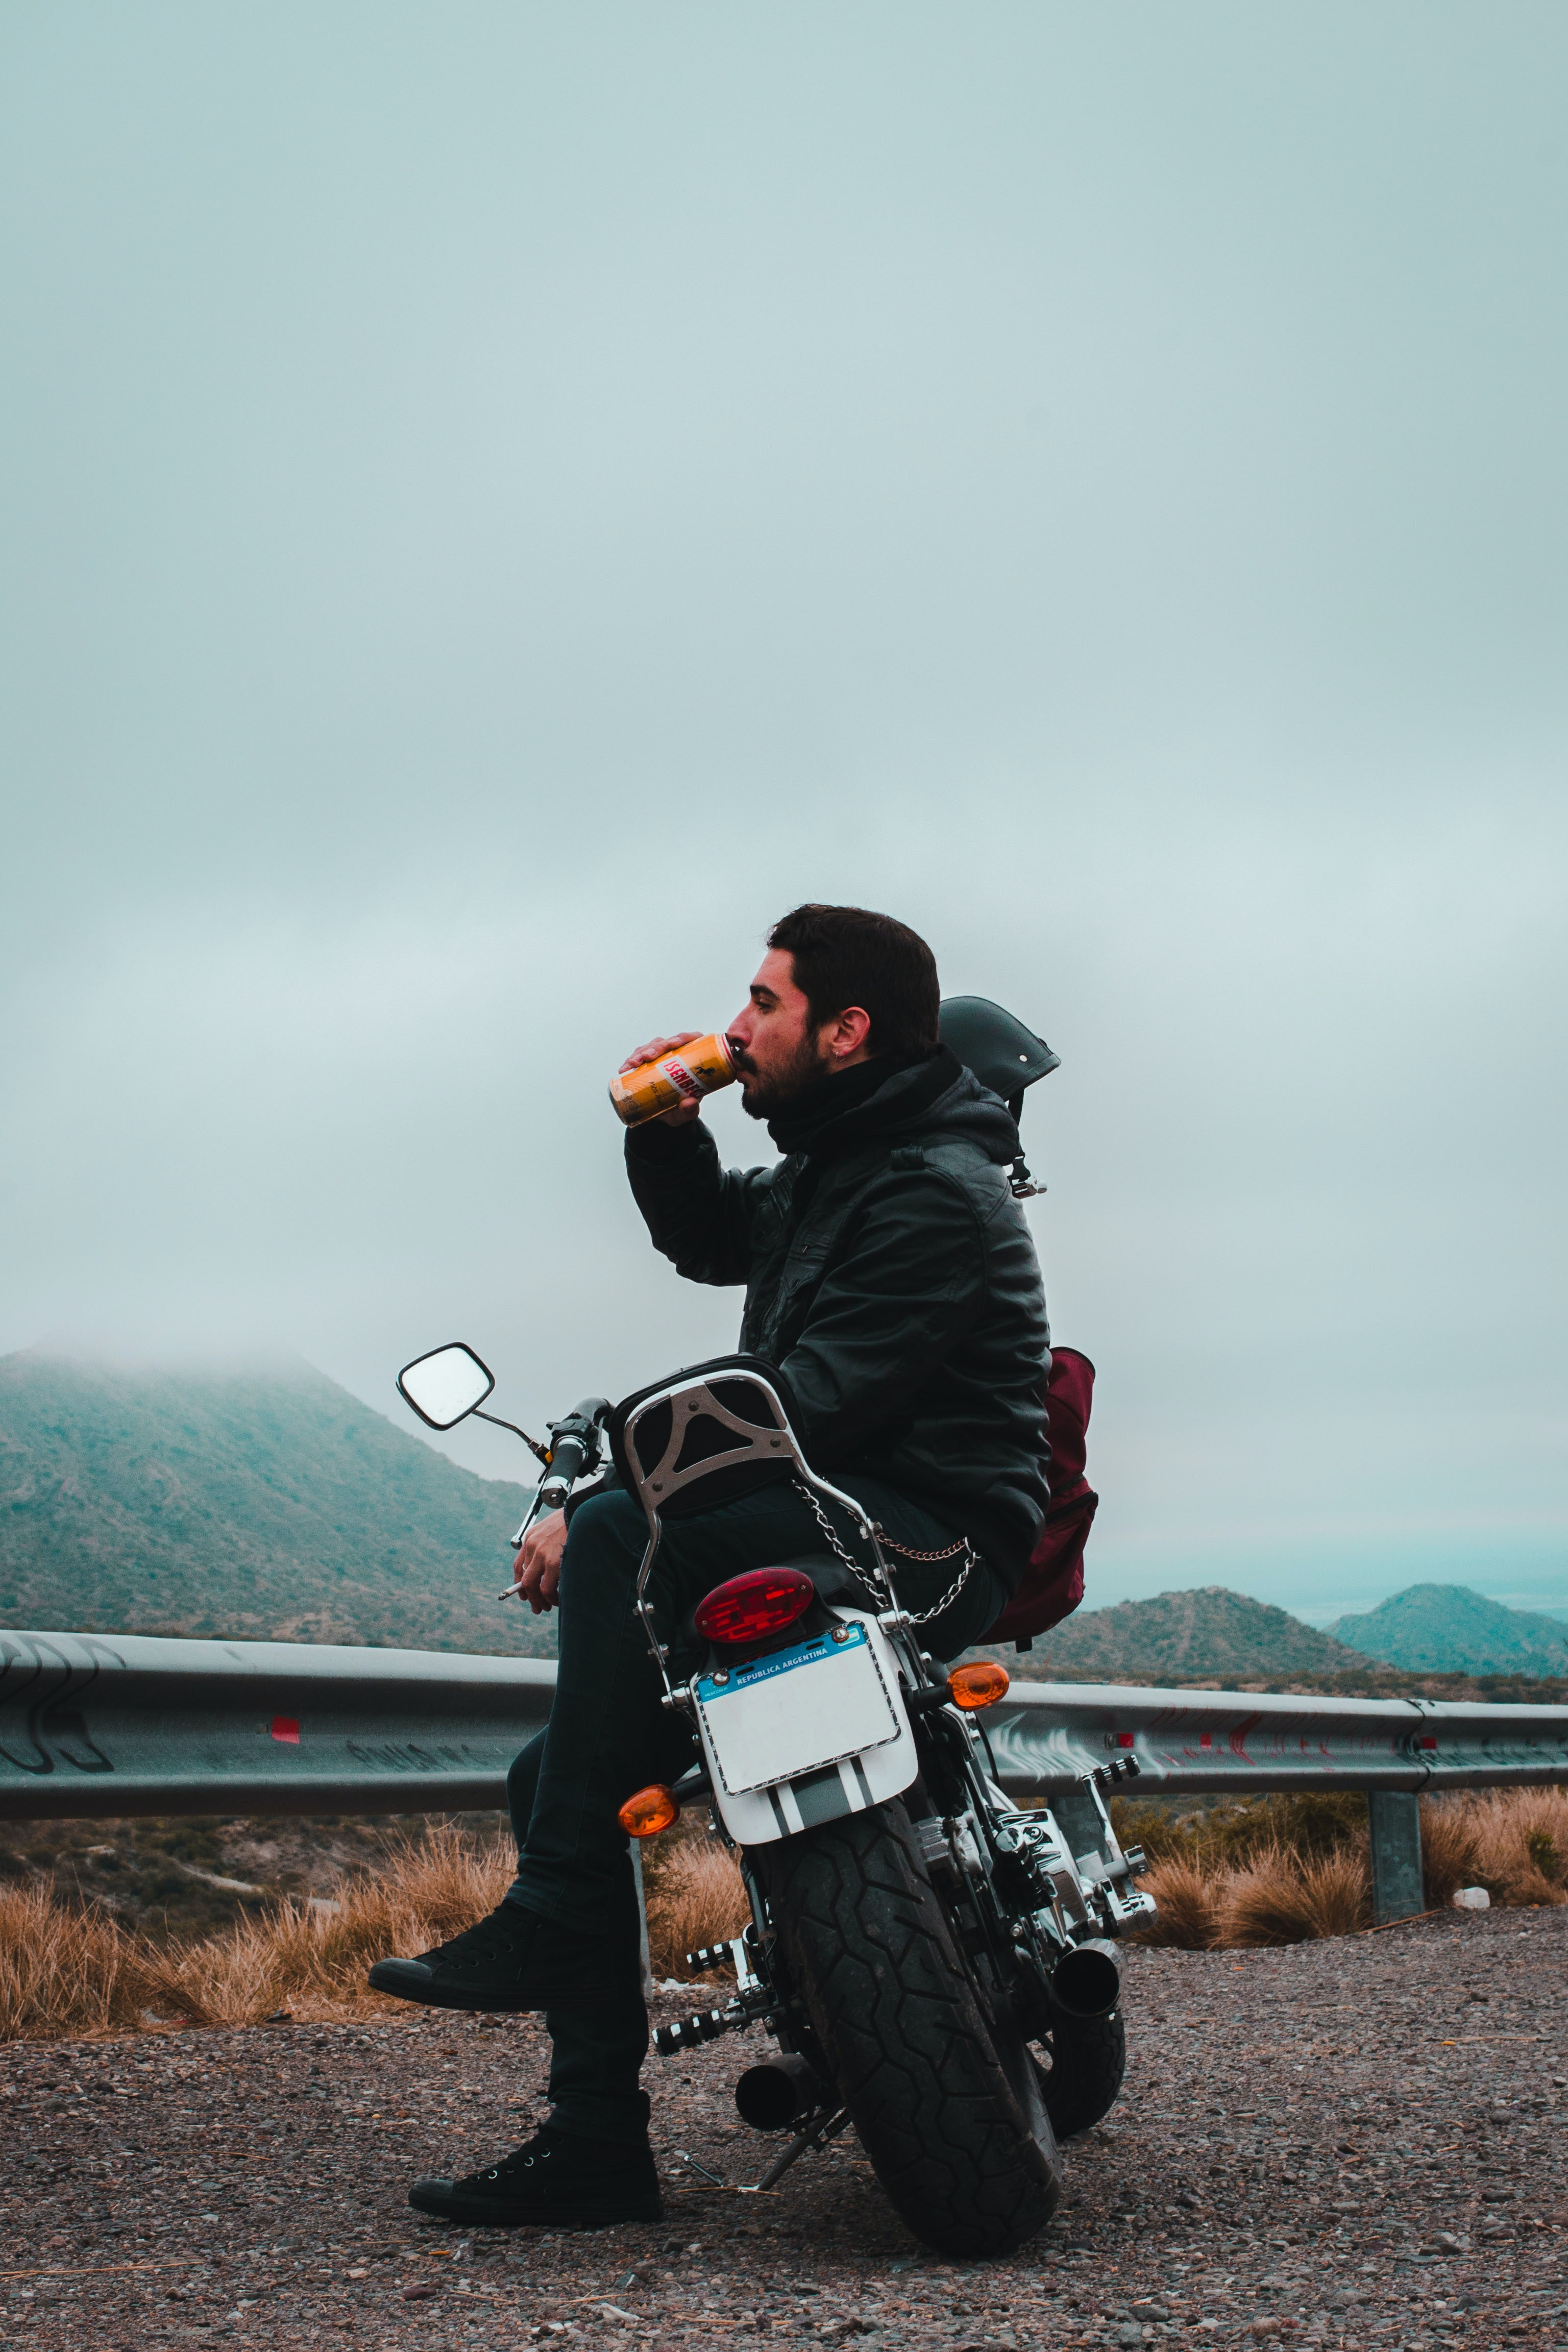 man sitting on motorcycle while drinking beverage in can overlooking mountain under dark cloudy skies at daytime